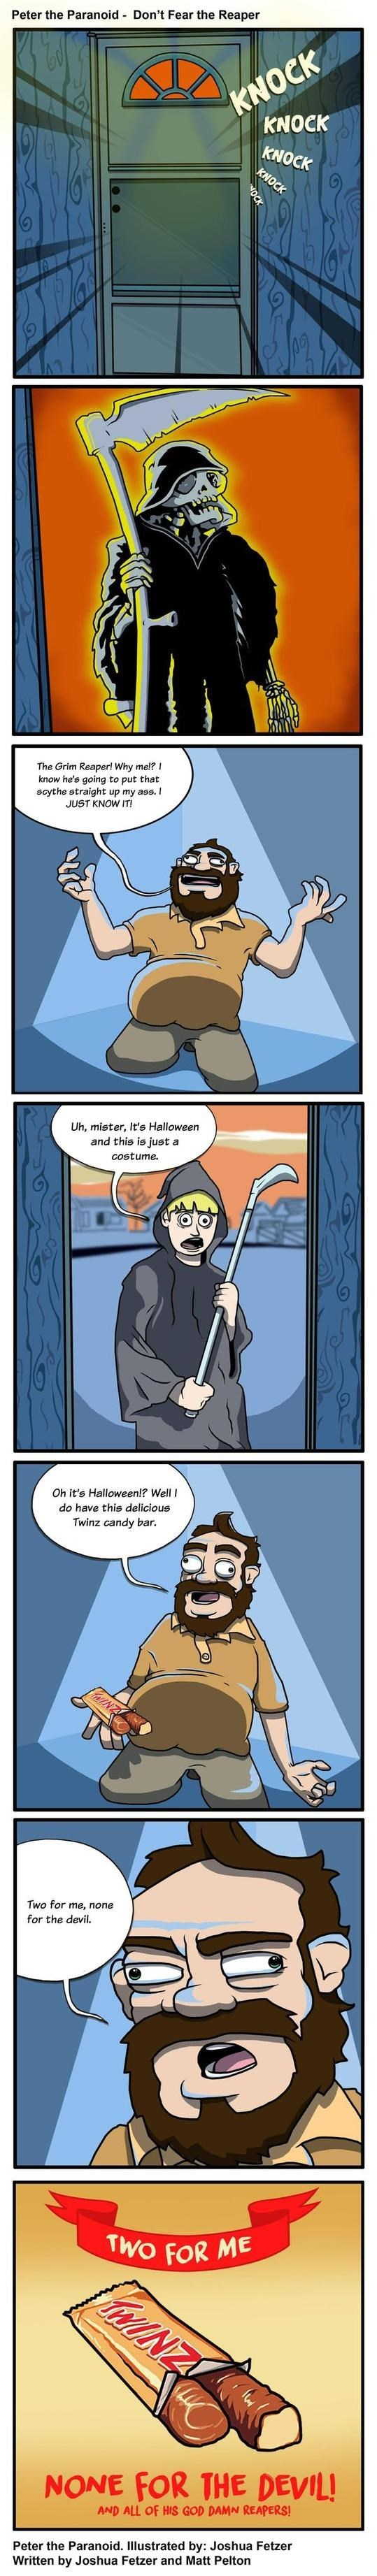 web comics halloween Don't Fear the Reaper